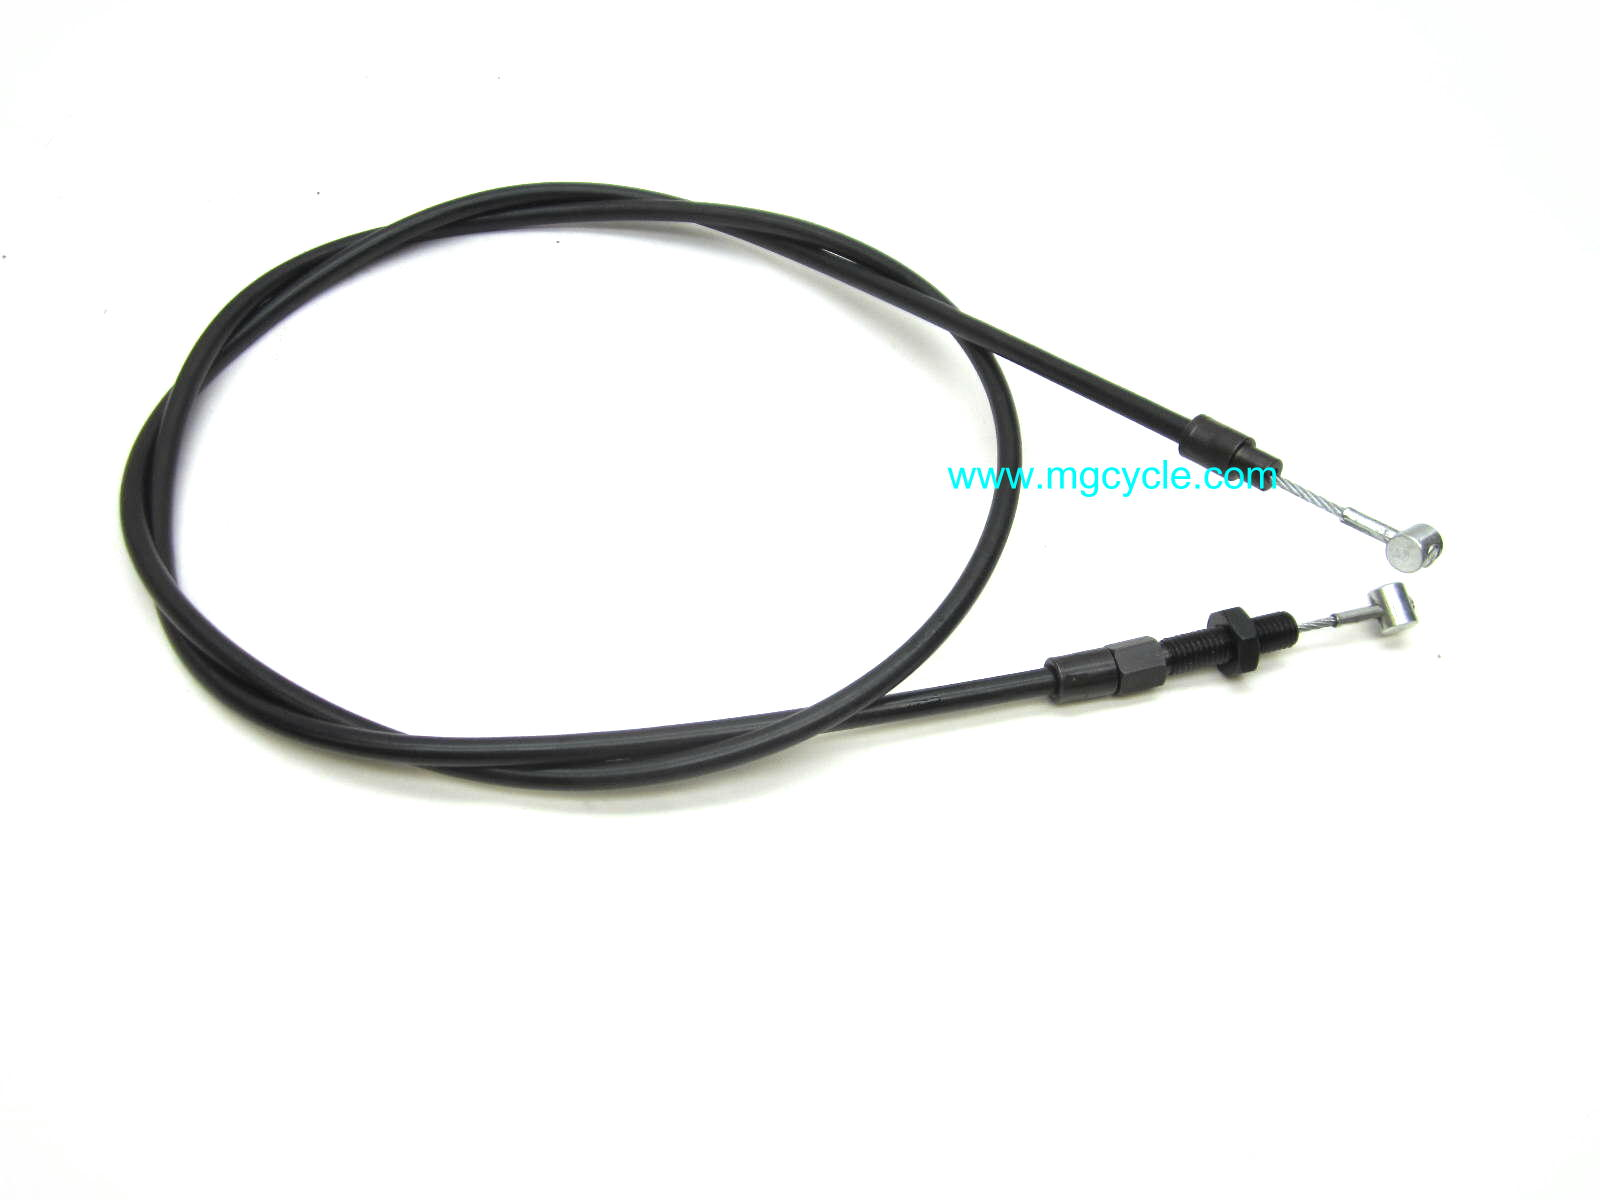 Clutch cable most 1100cc California models 1998 -2005